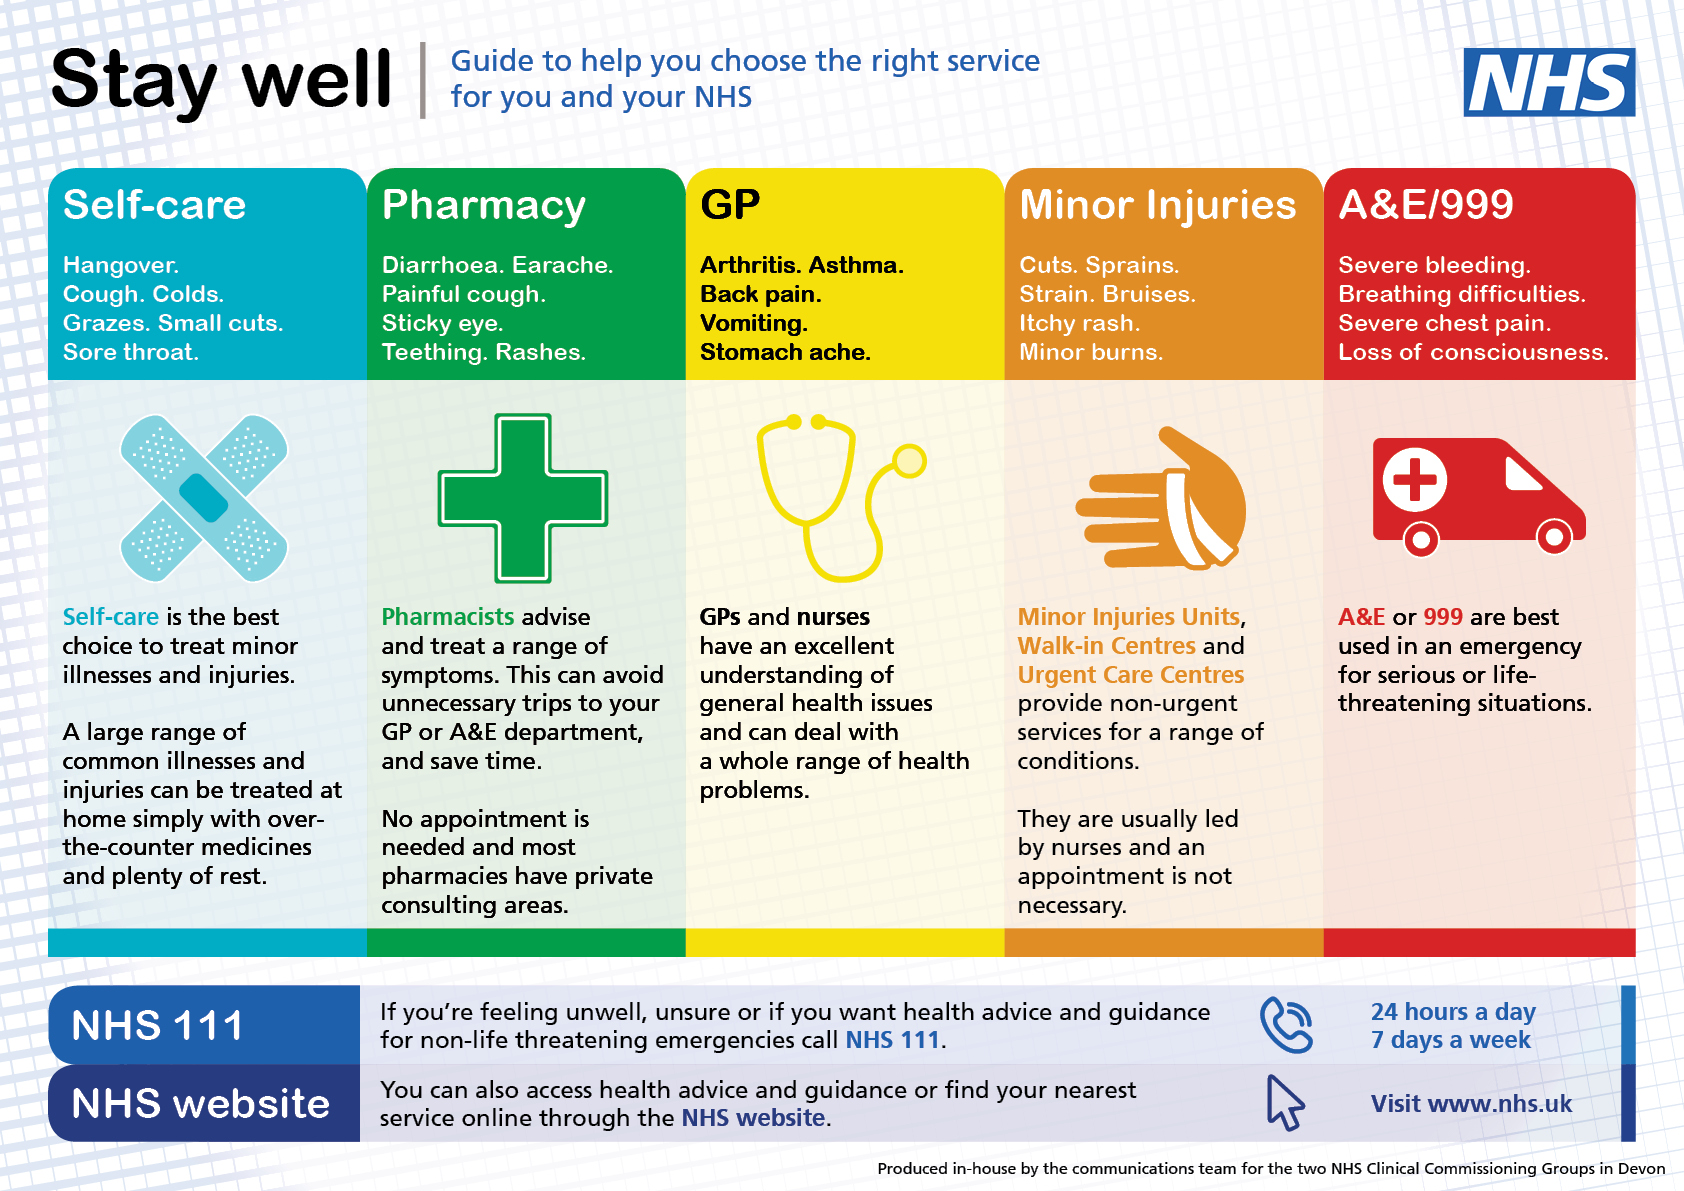 A guide to help you chose the right service for you and your NHS